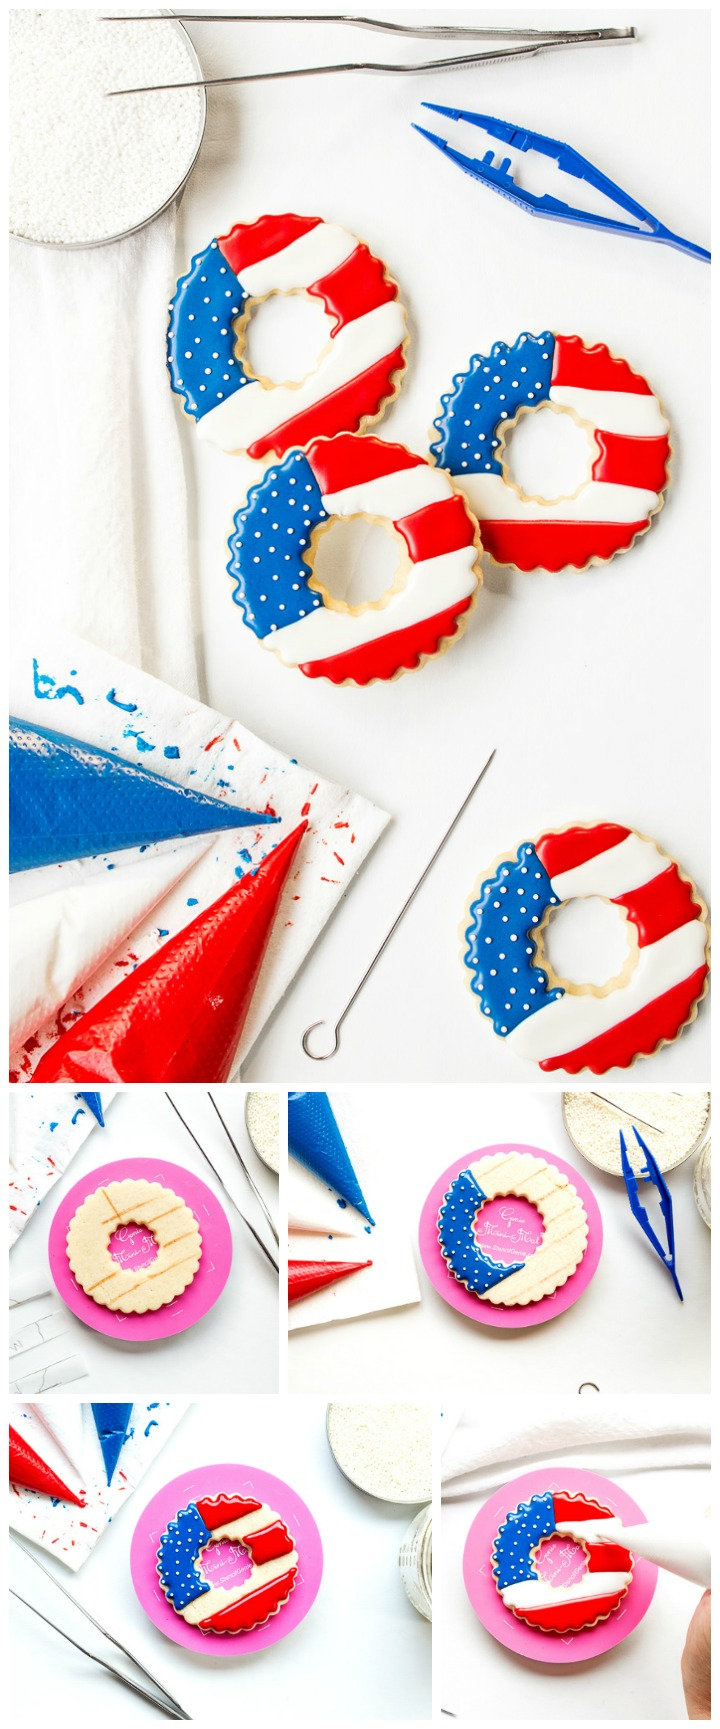 How to Make Fun Simple Patriotic Wreath Cookies with Video | The Bearfoot Baker